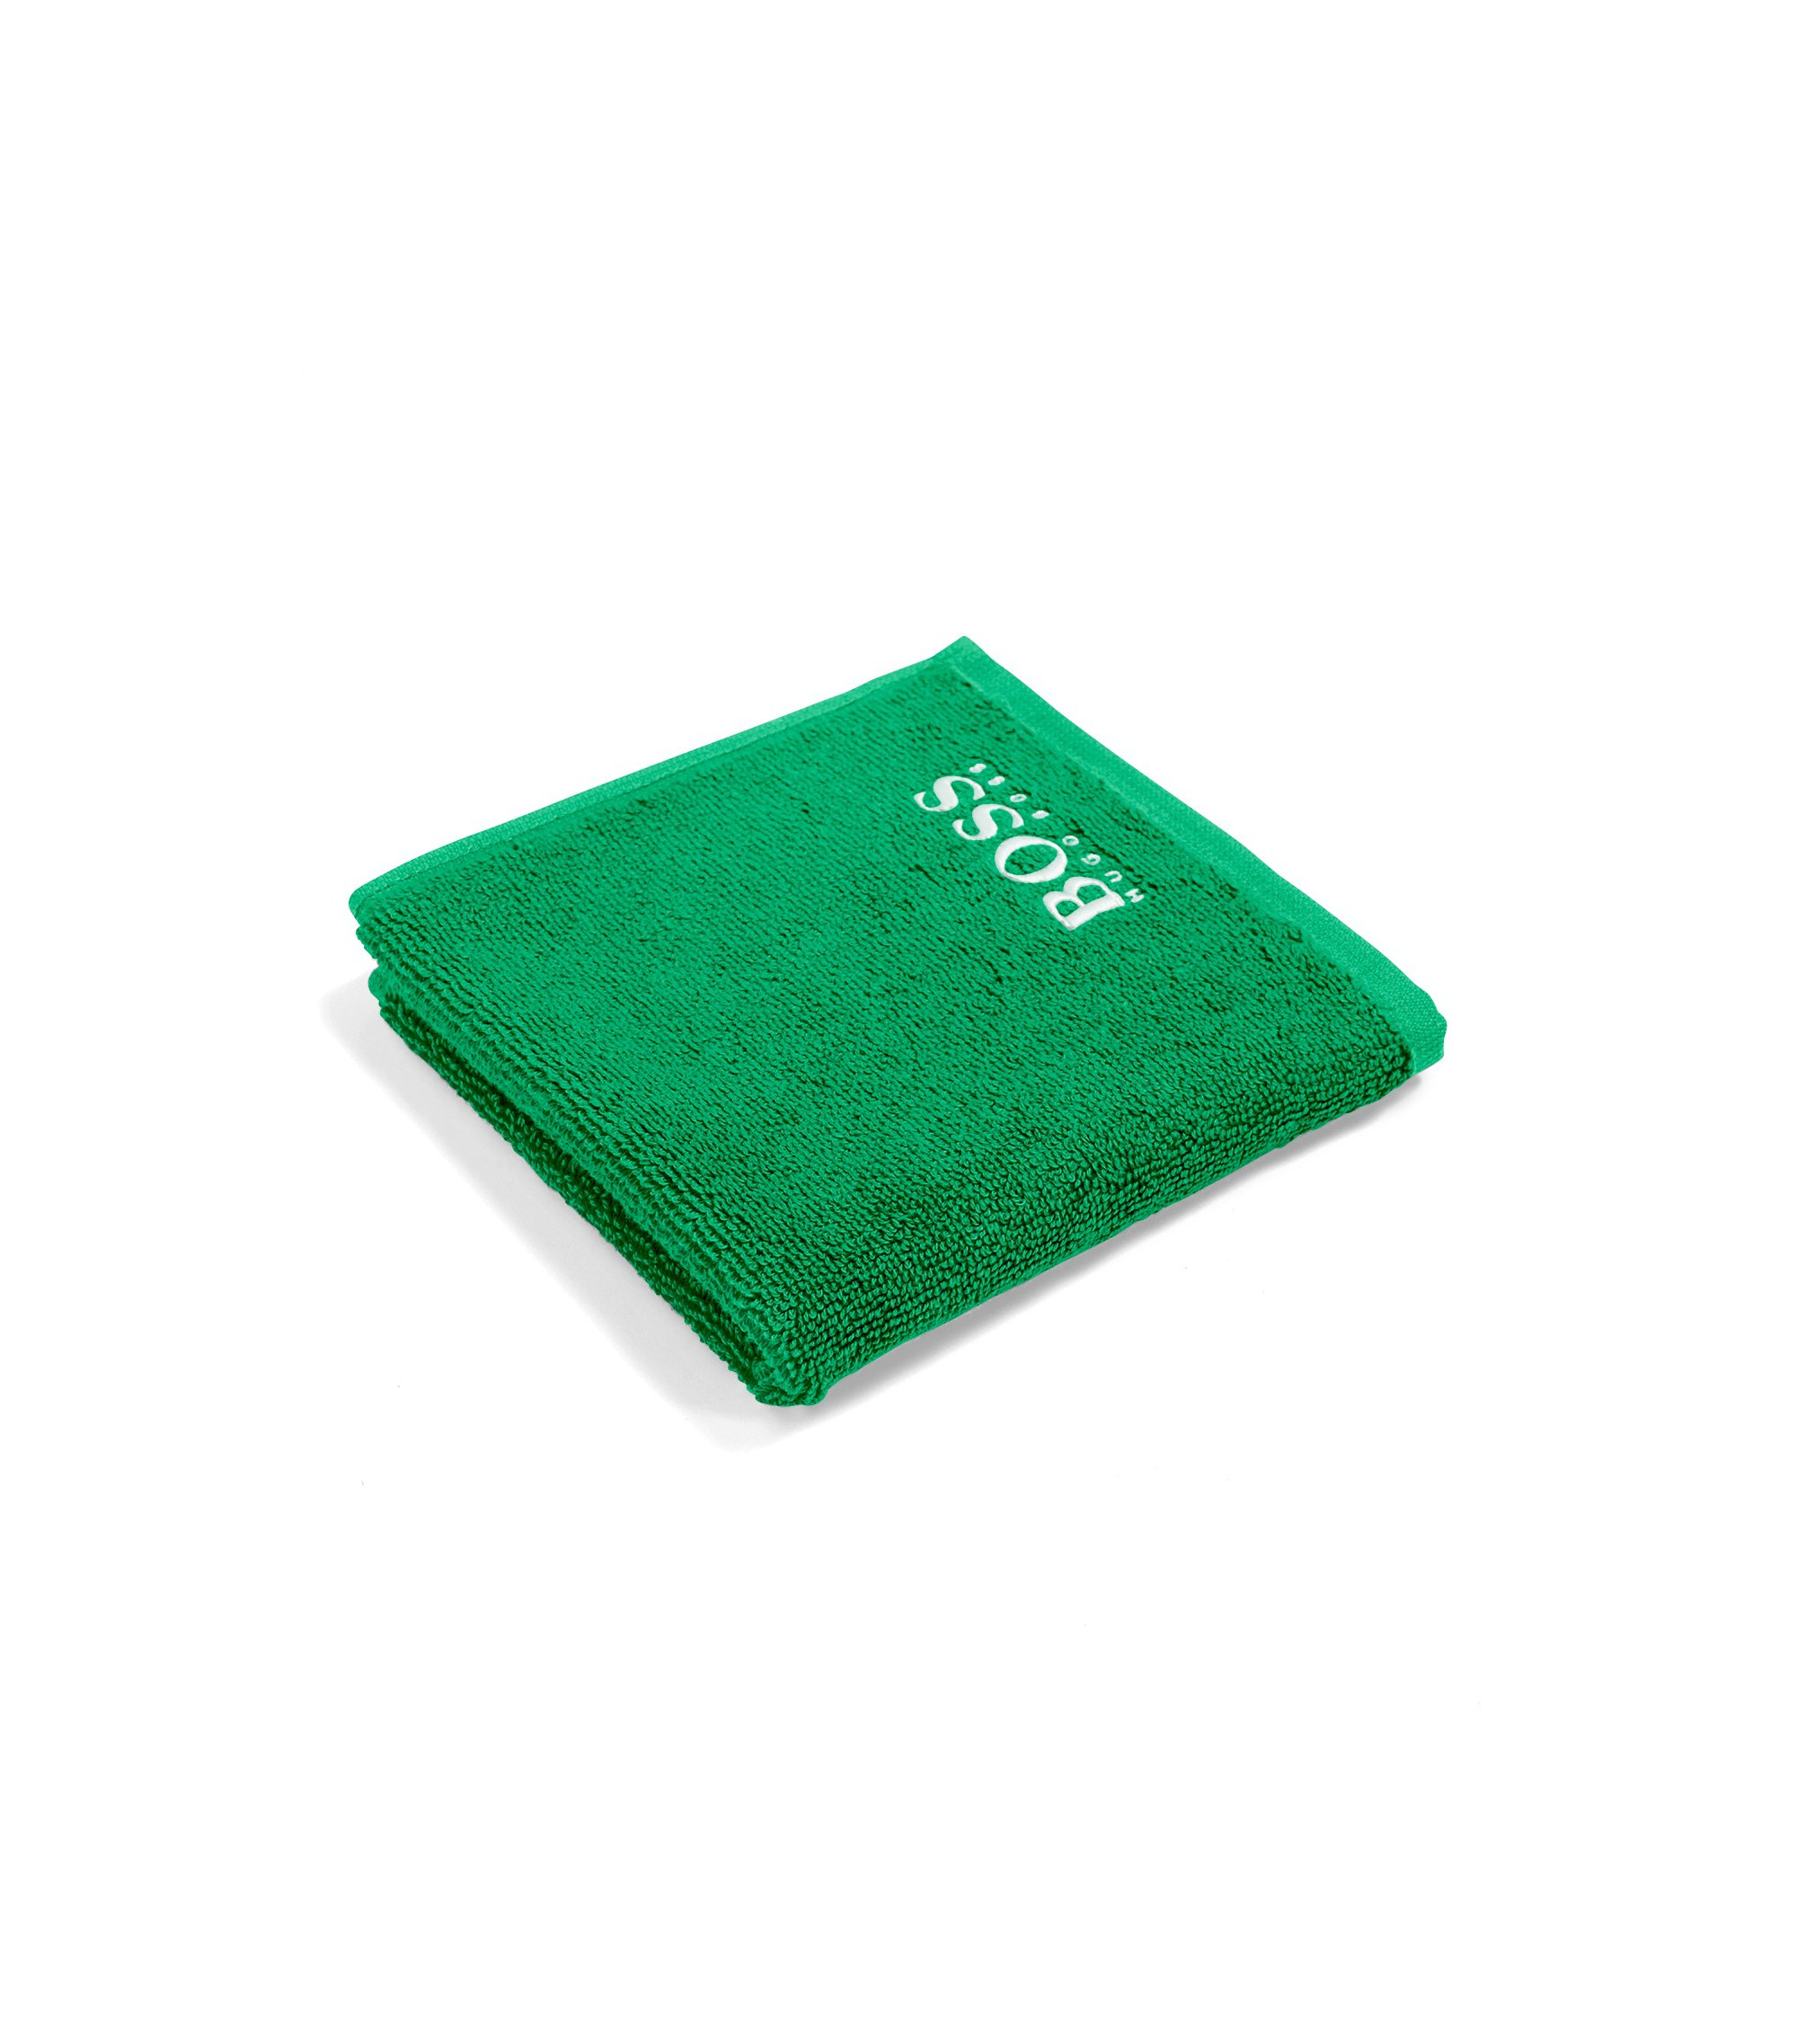 Finest Egyptian cotton face cloth with logo embroidery, Green